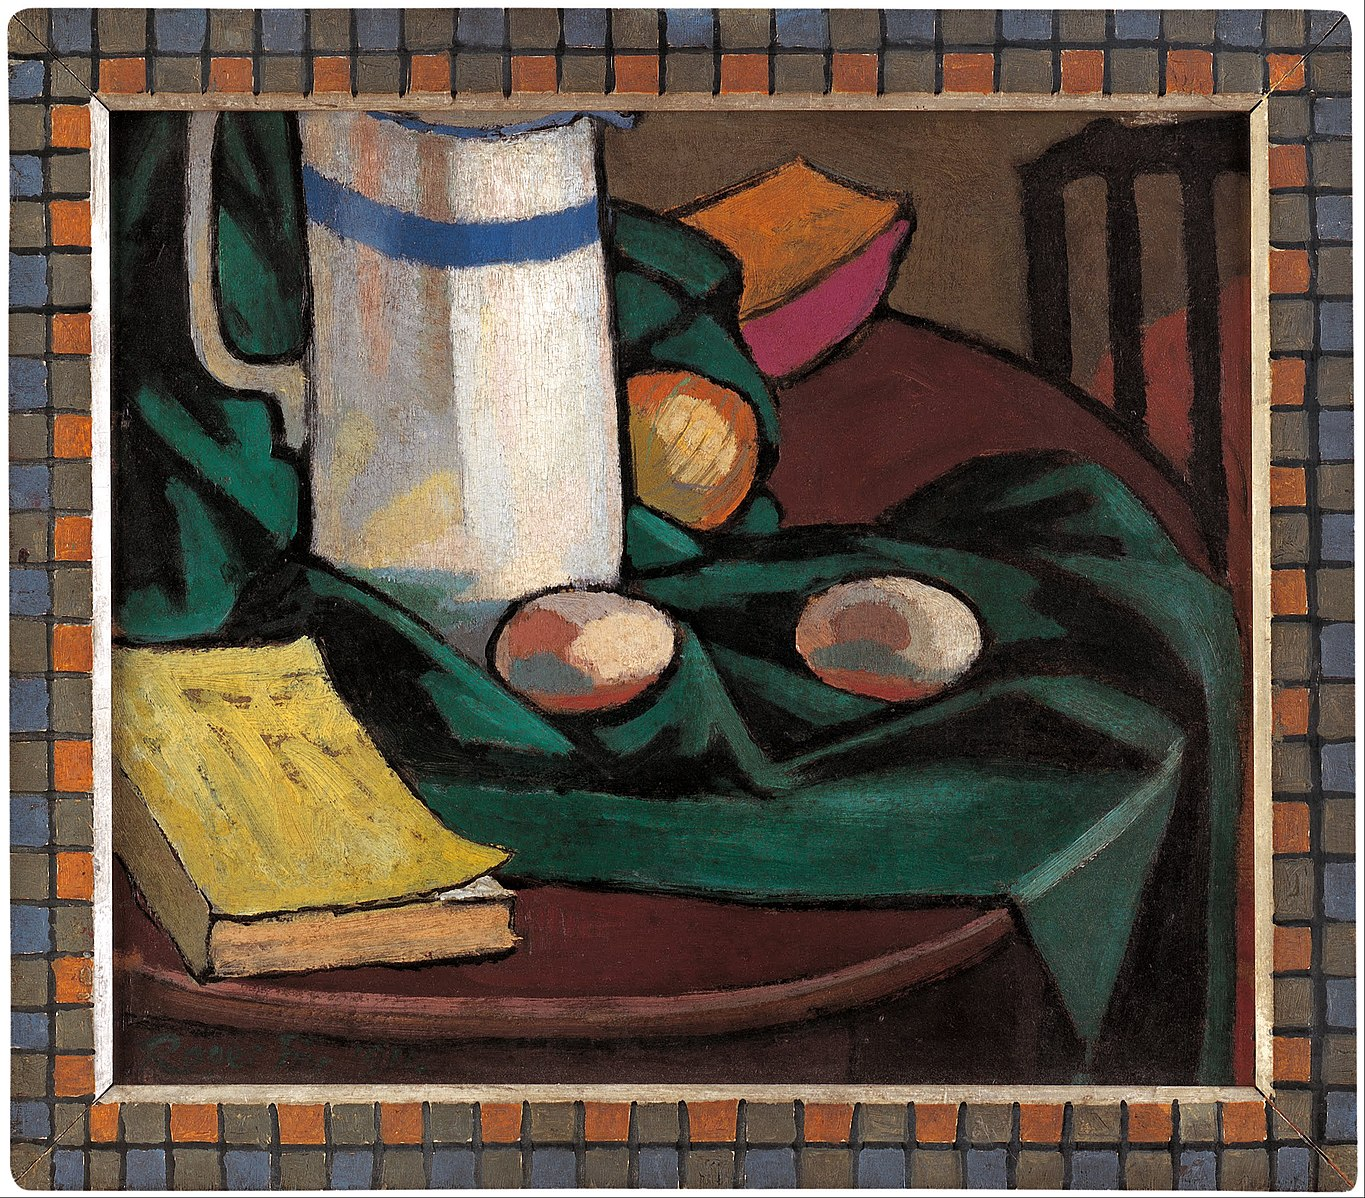 1366px-Roger_Fry_-_Still_life-_jug_and_eggs_-_Google_Art_Project